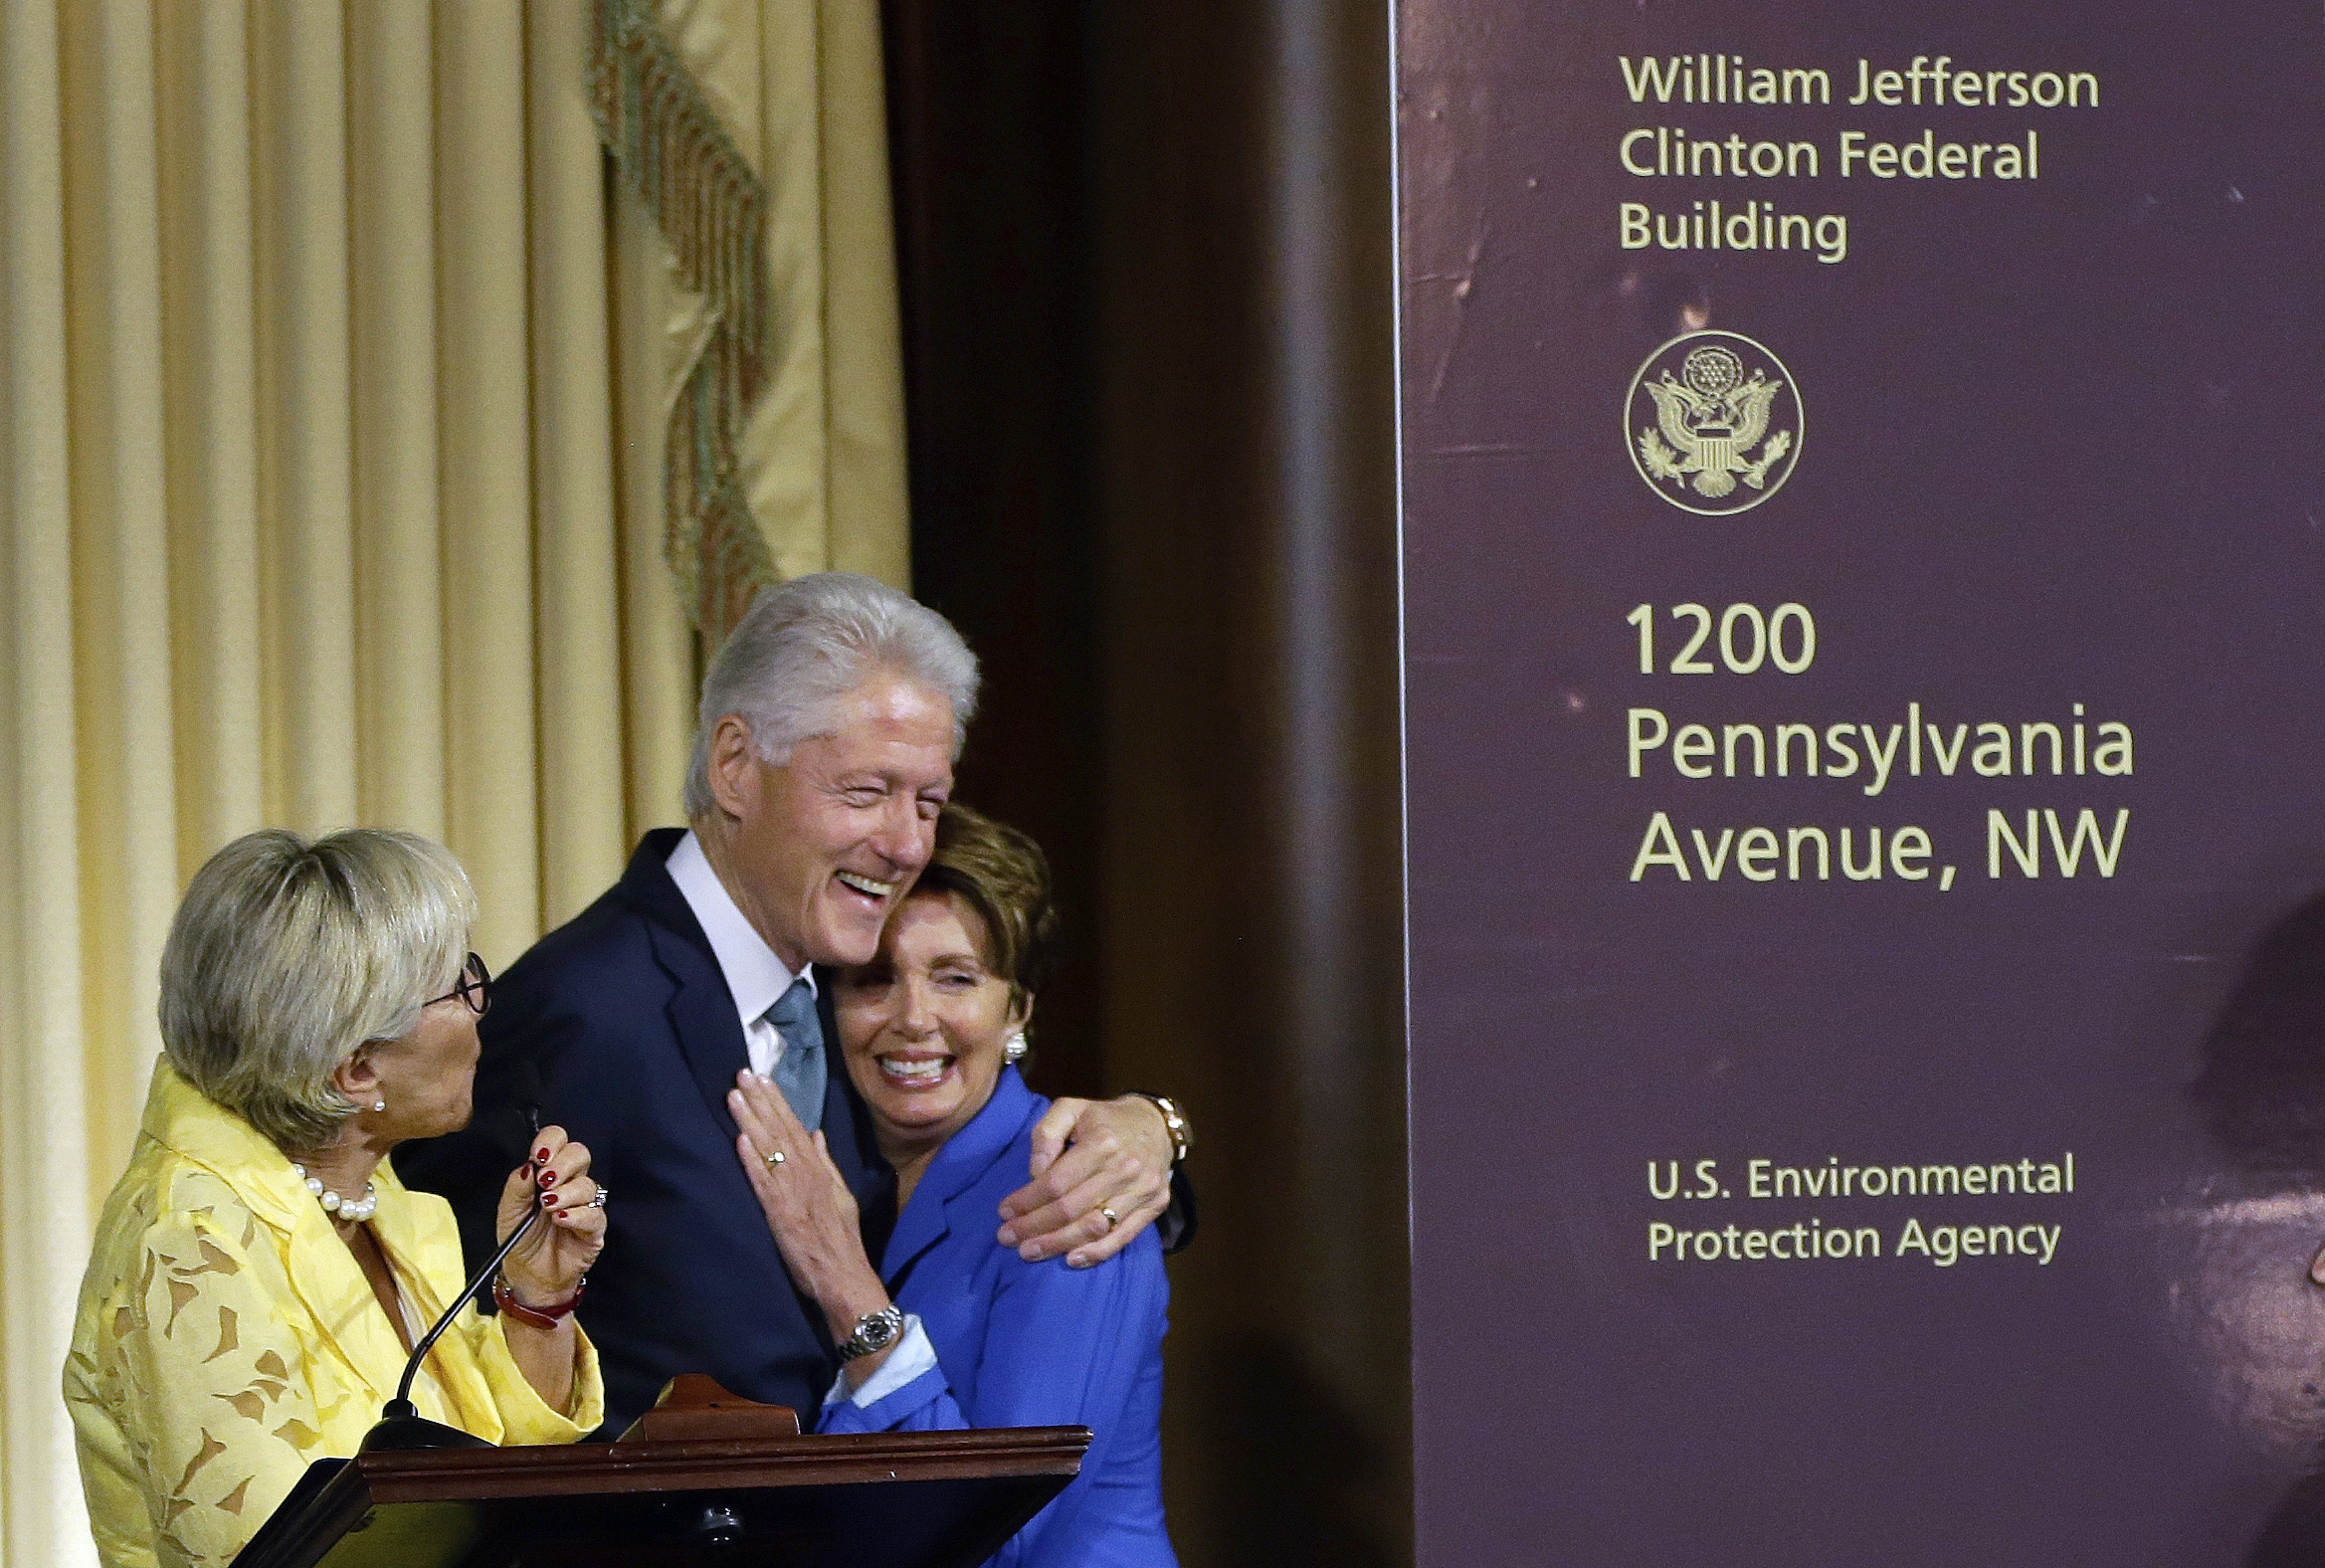 EPA Building Named For Bill Clinton; He Says That's Fitting